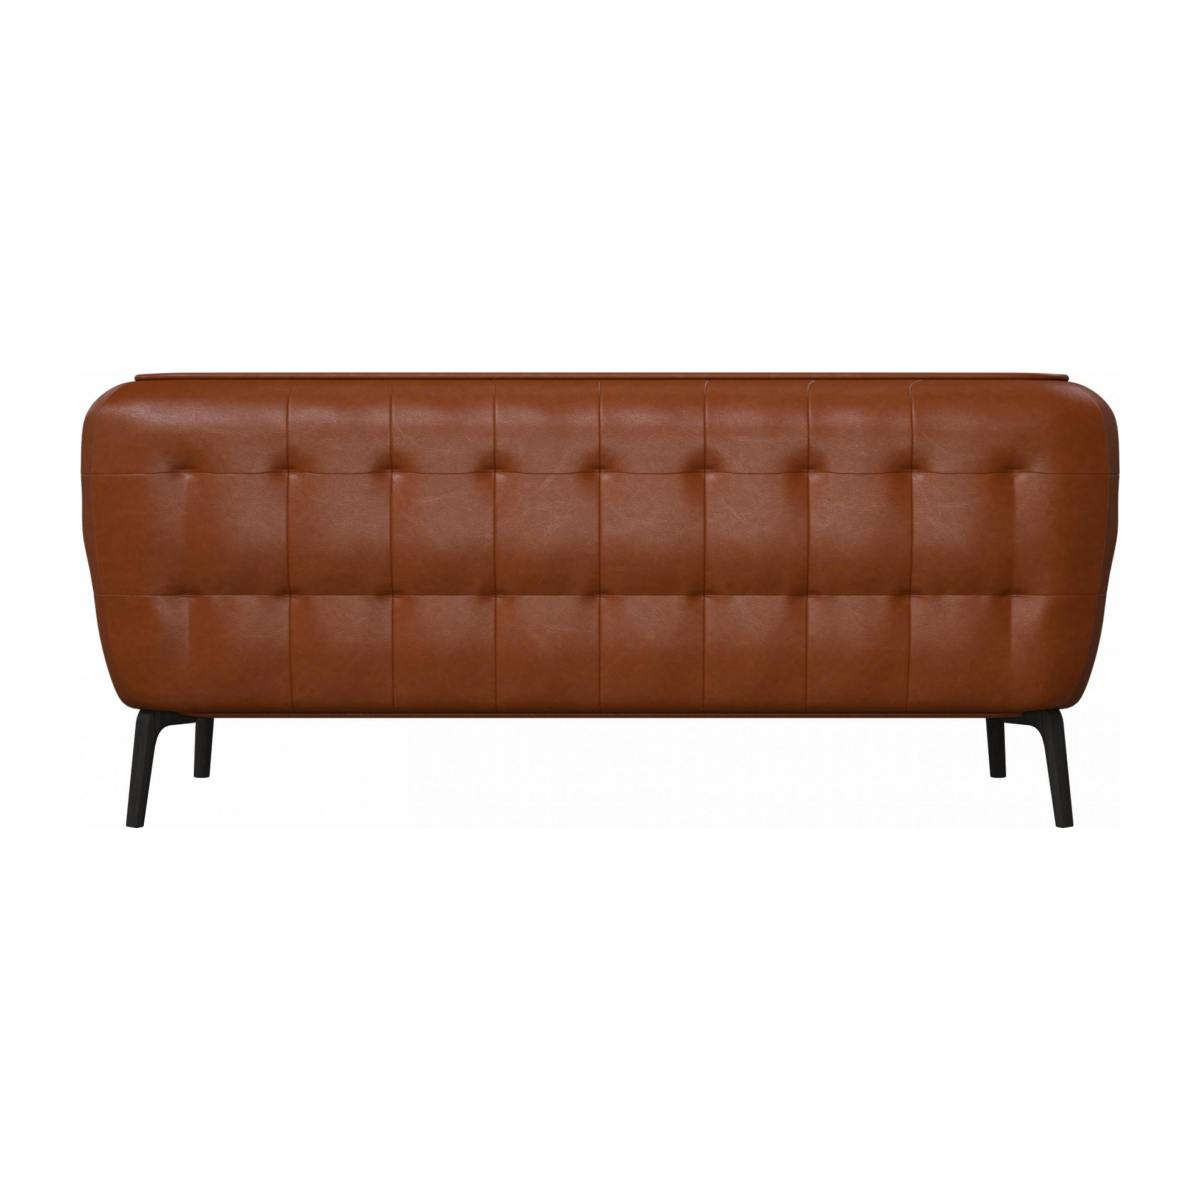 2 seater sofa in Vintage aniline leather, old chestnut and dark feet n°3